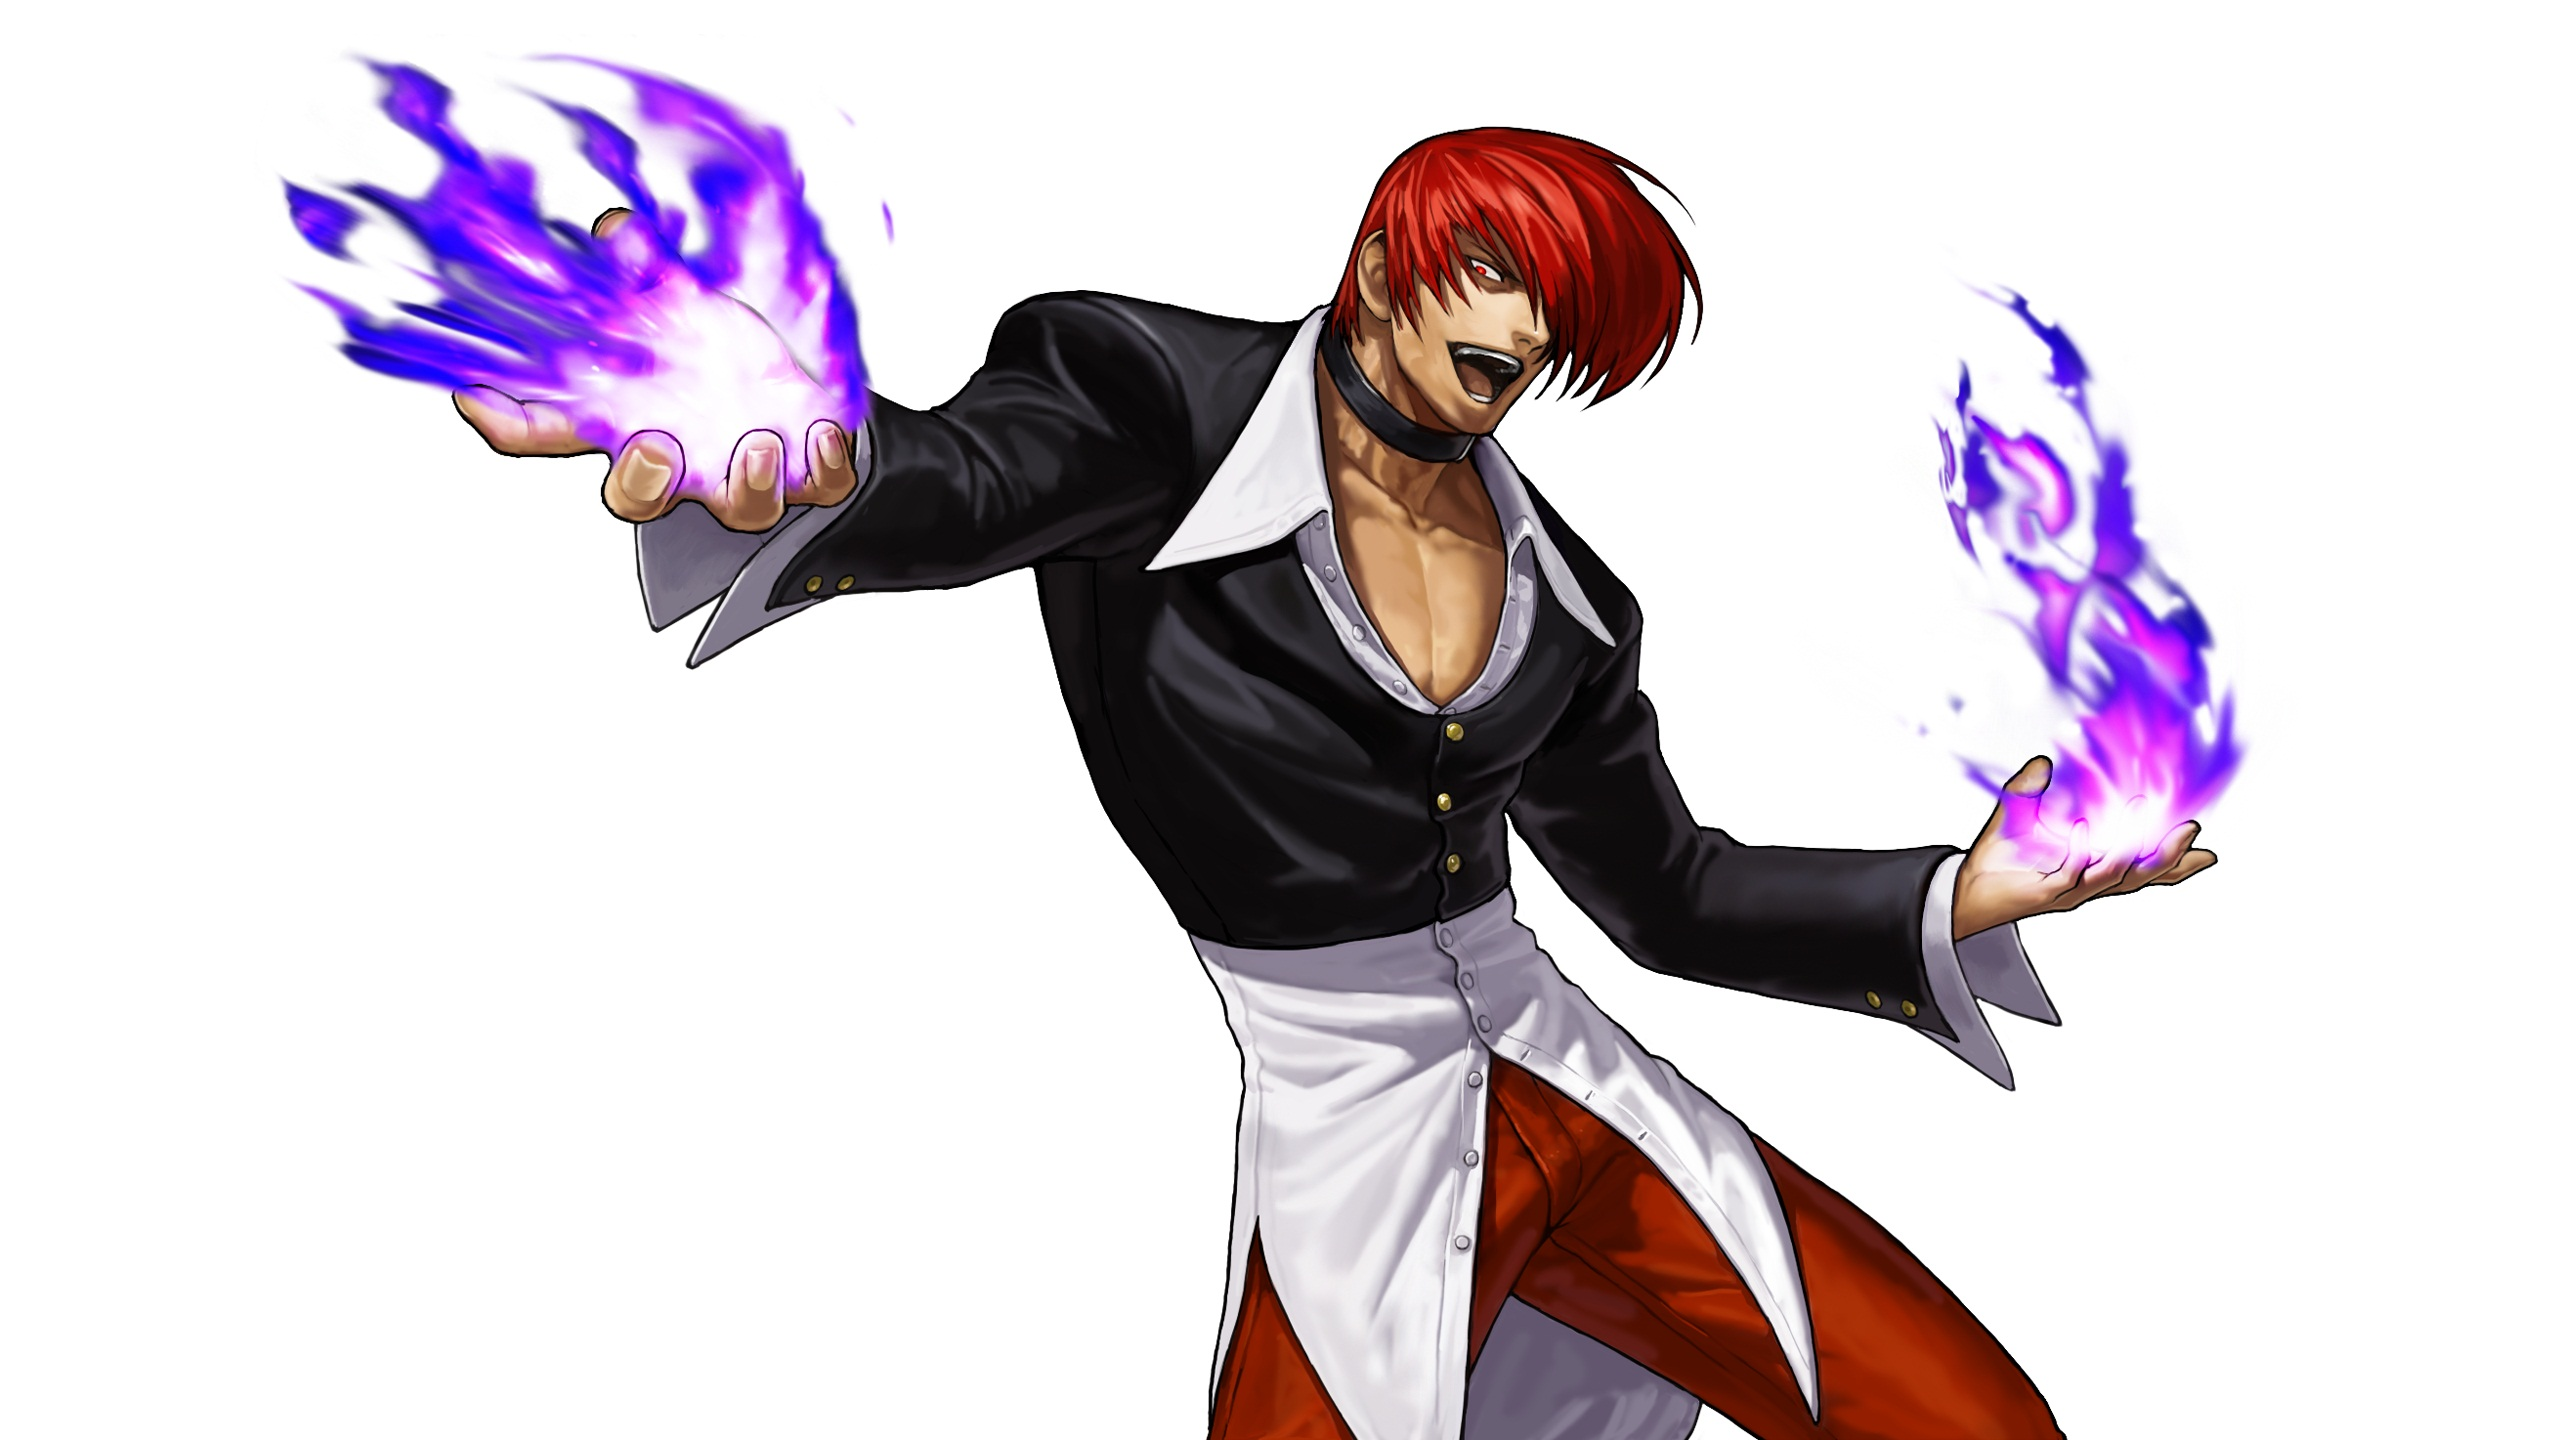 King of fighters xiii character win portraits - King of fighters characters pictures ...